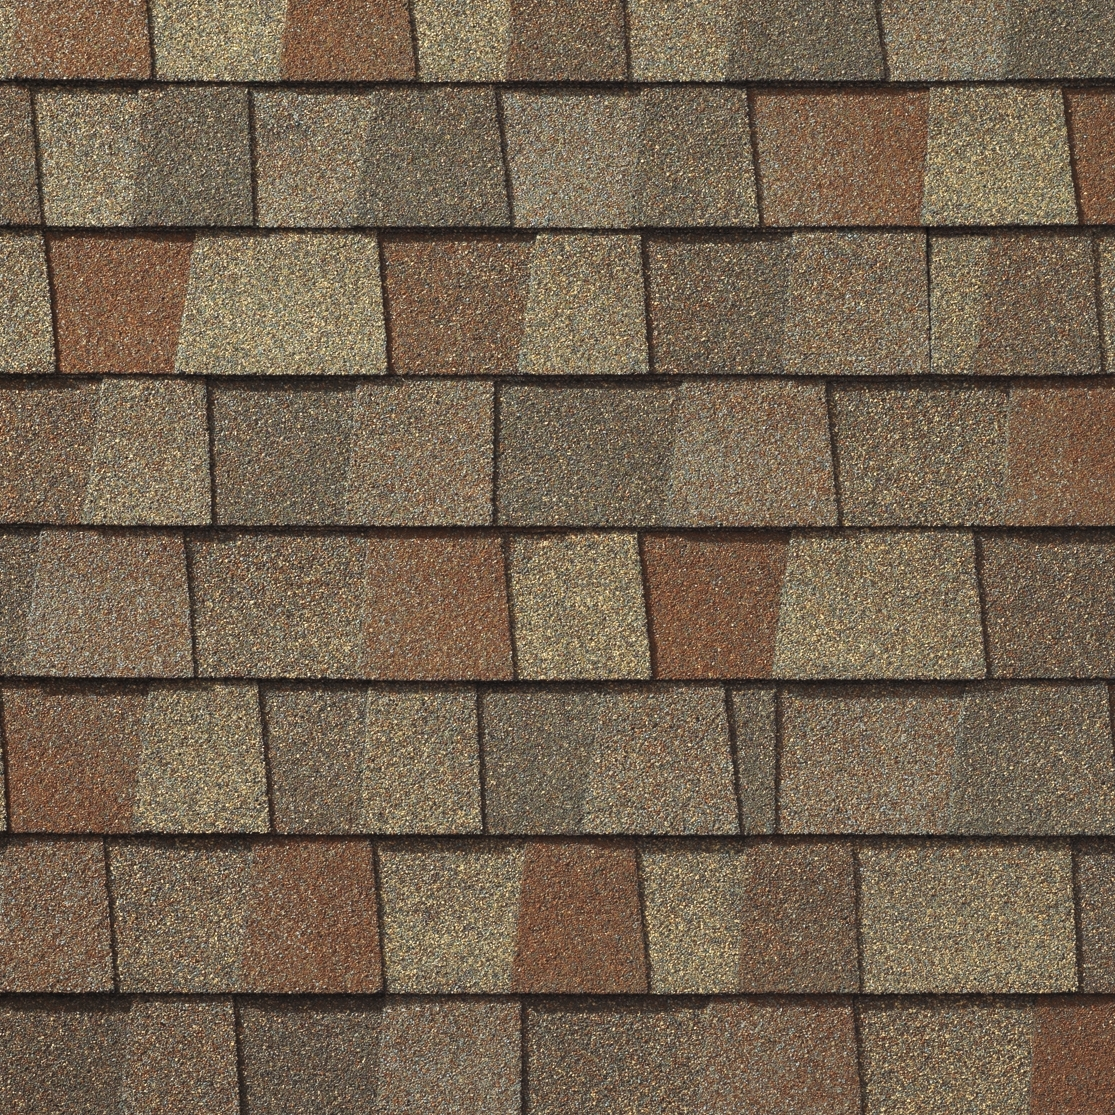 Gaf Timberline Shingles Installation Fairfax County